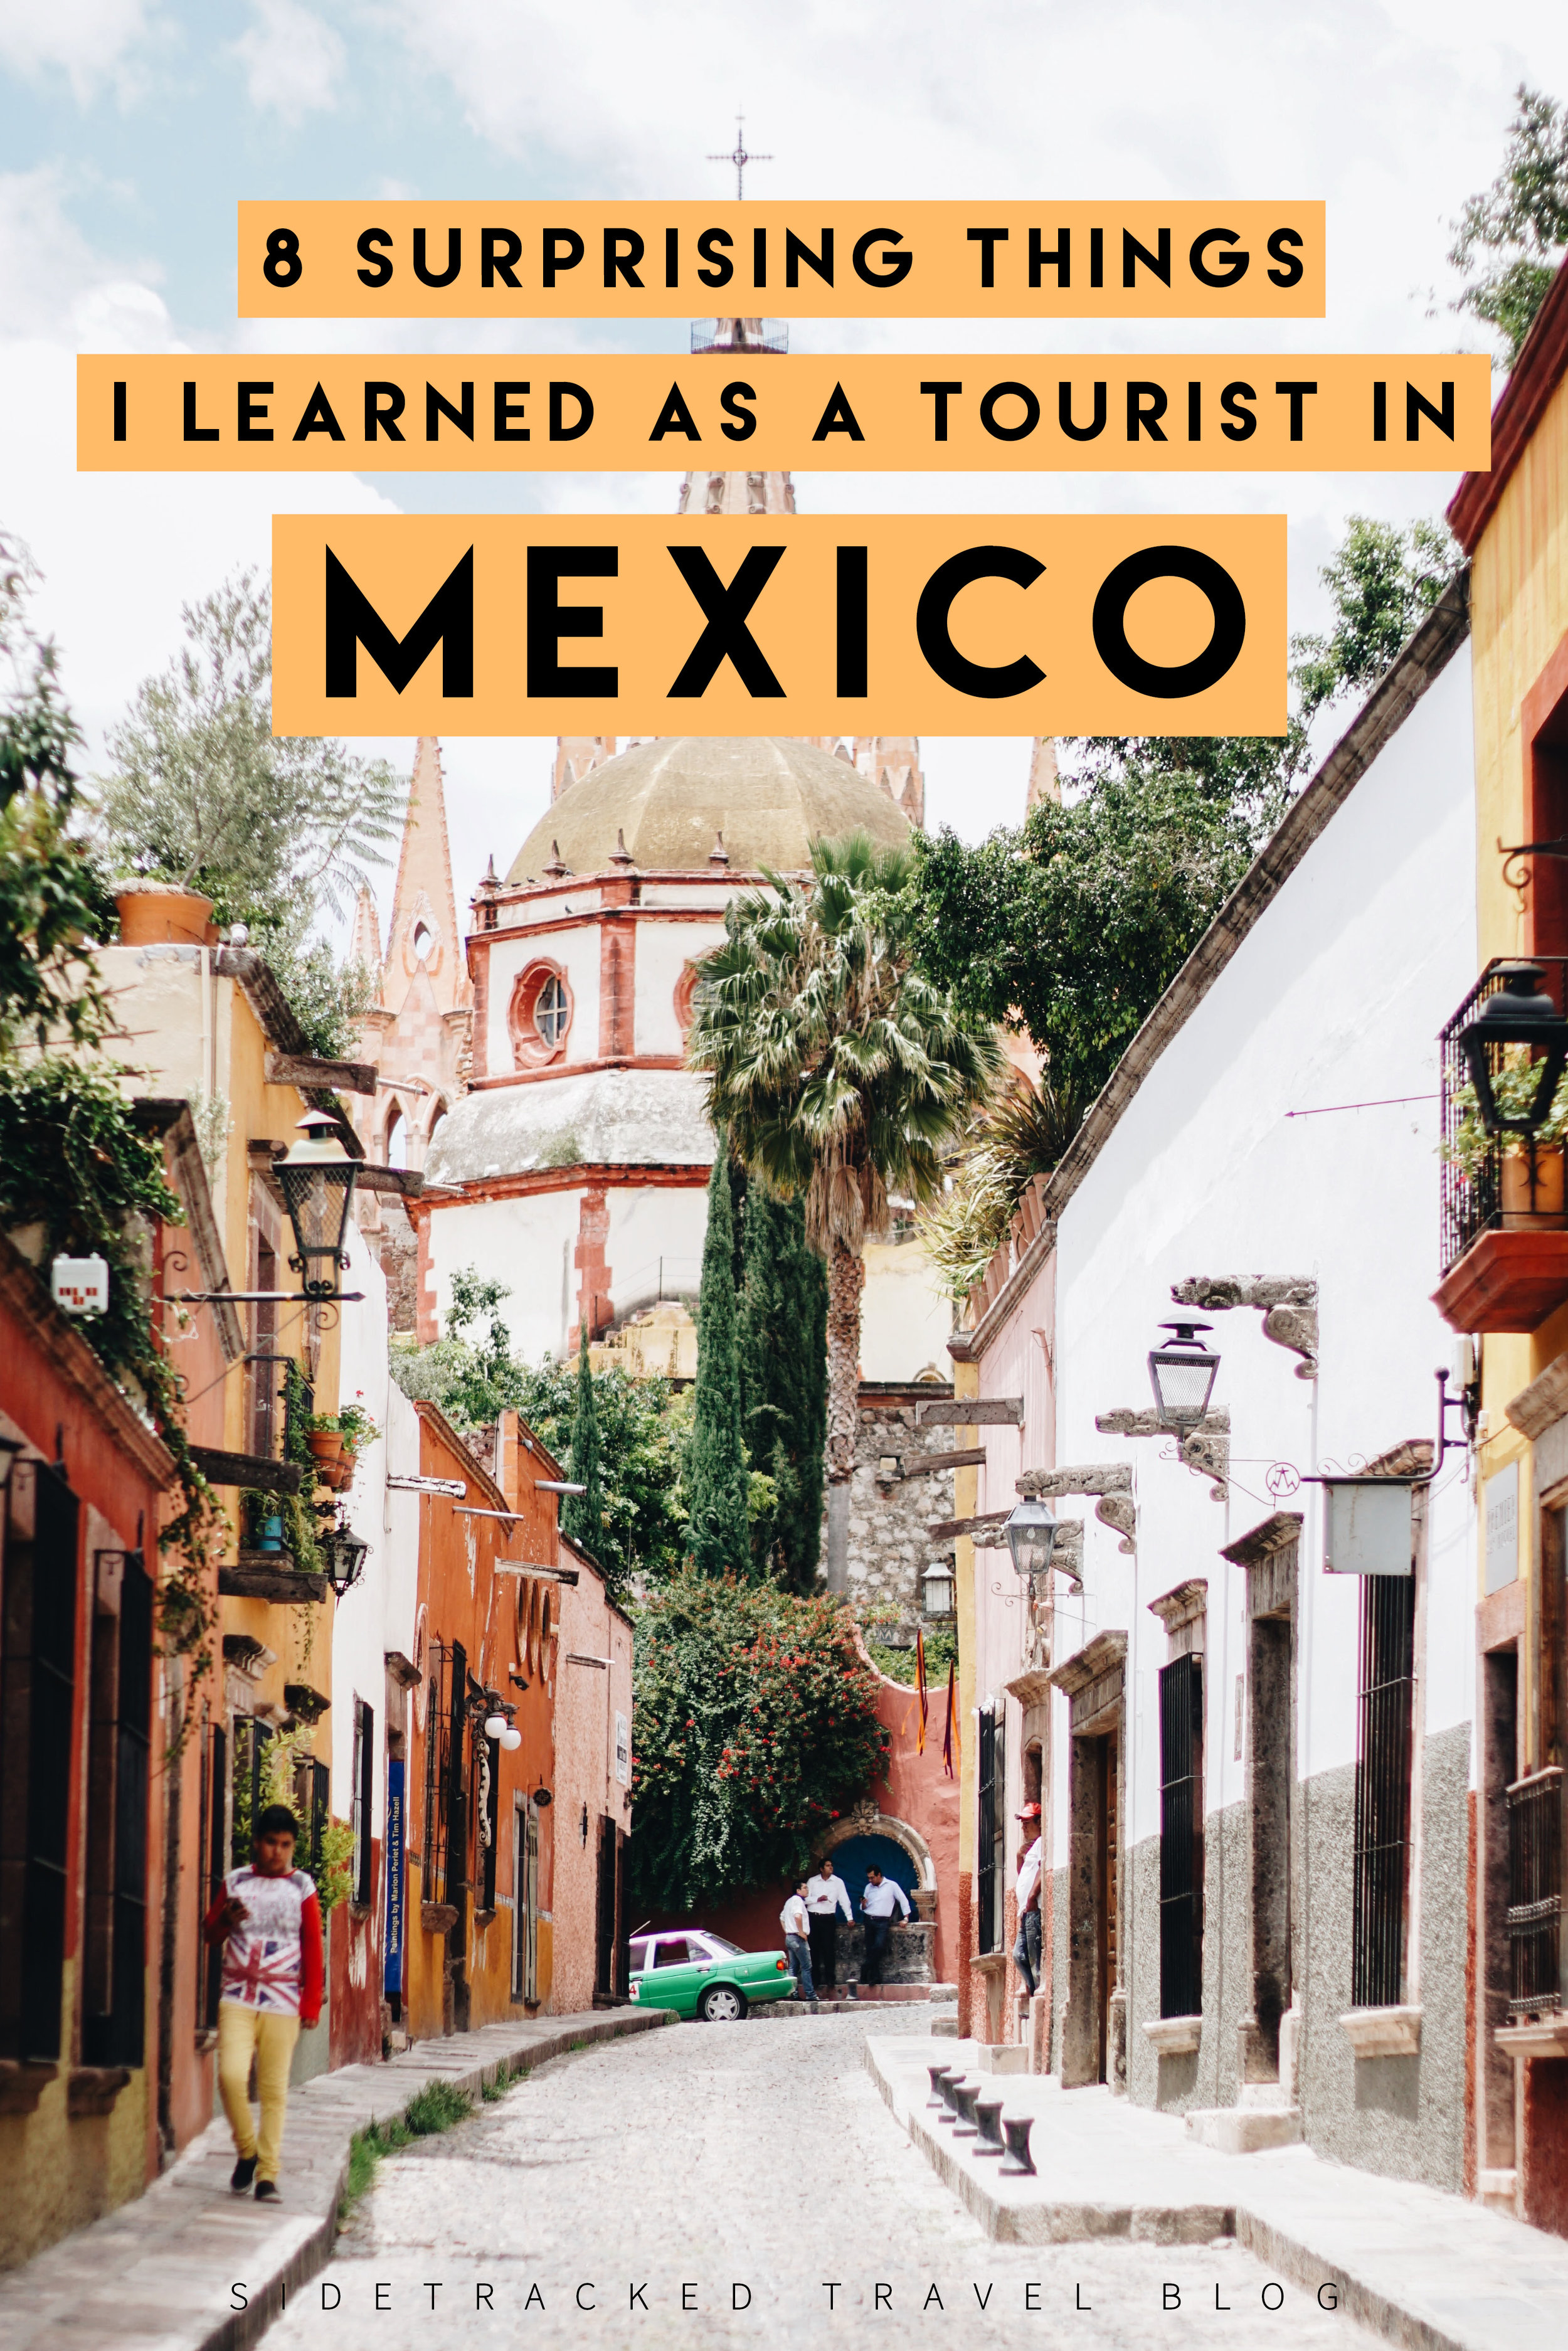 Throughout my travels in Mexico I've learned that, like any other country, Mexico is rich in its own idiosyncrasies, some of which have slowly become more obvious to me each time I visit. Here are 8 surprising things I've learned as a tourist in Mexico!